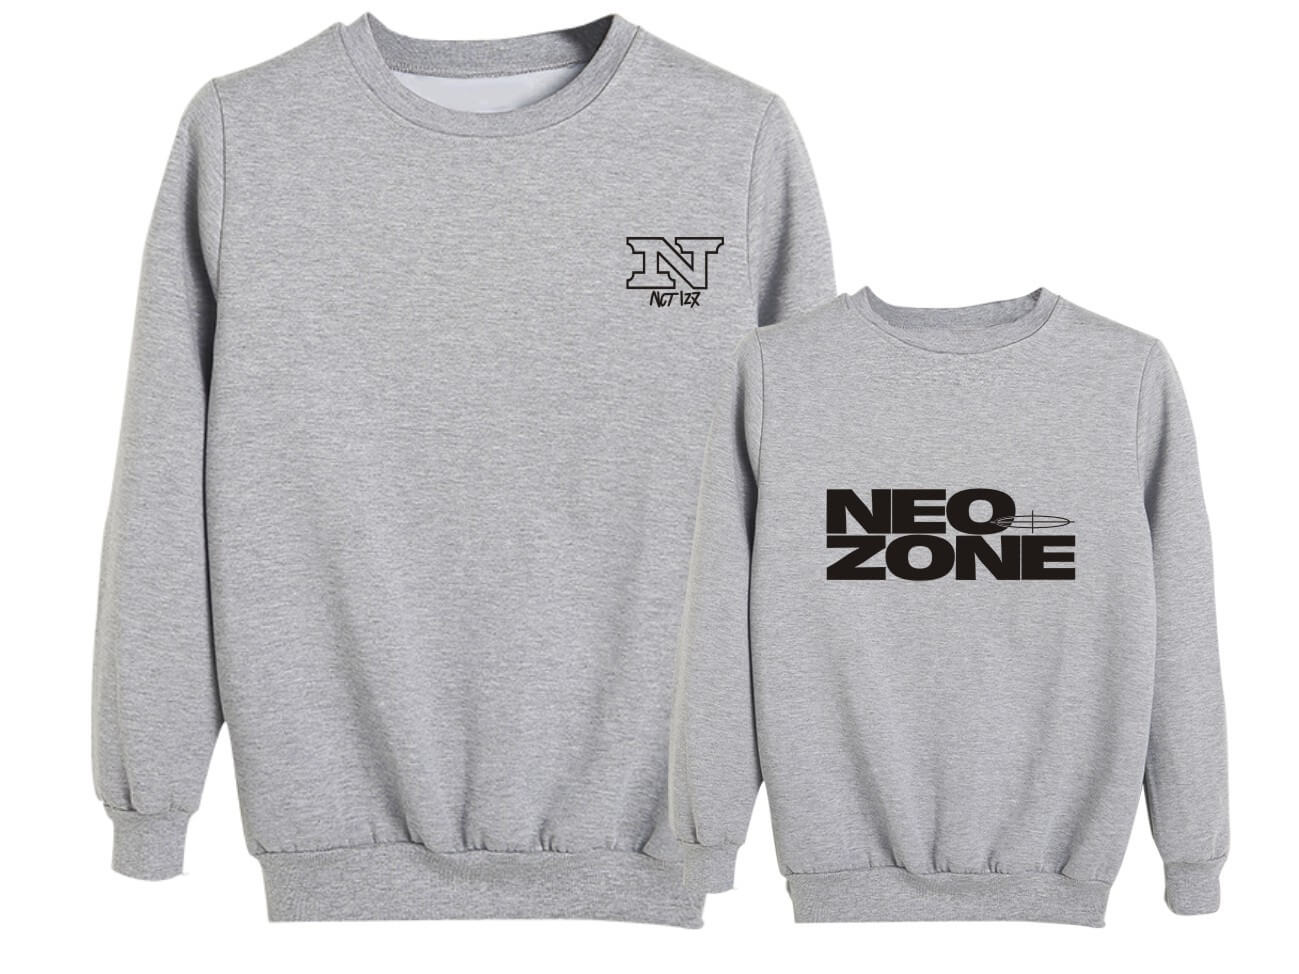 NCT 127 NeoZone Album Printed Cotton Sweatshirt